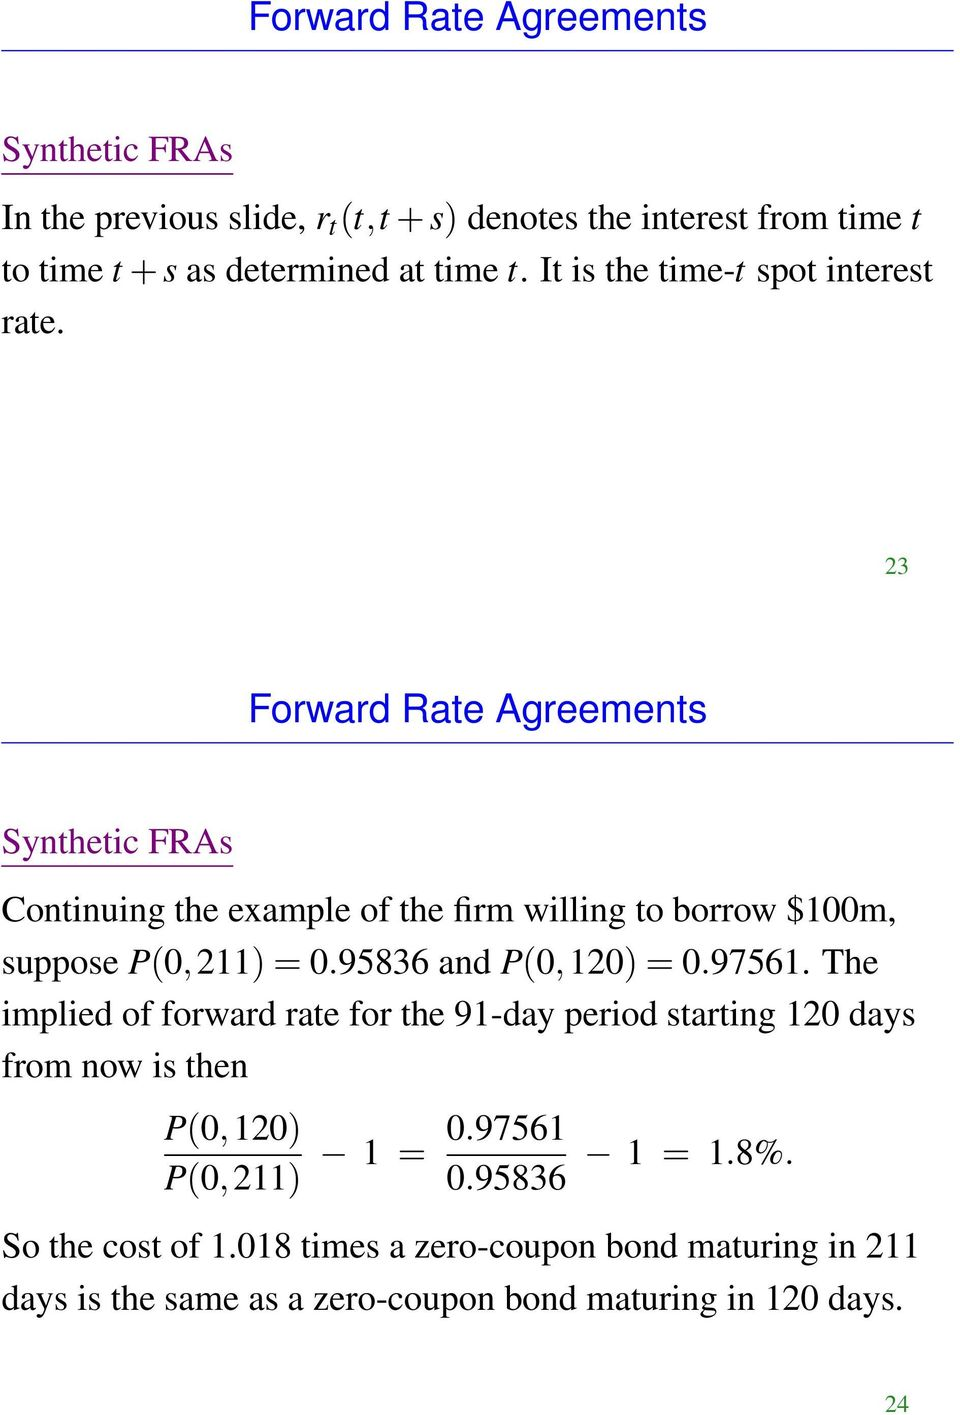 23 Forward Rate Agreements Synthetic FRAs Continuing the example of the firm willing to borrow $100m, suppose P(0, 211) = 0.95836 and P(0, 120) = 0.